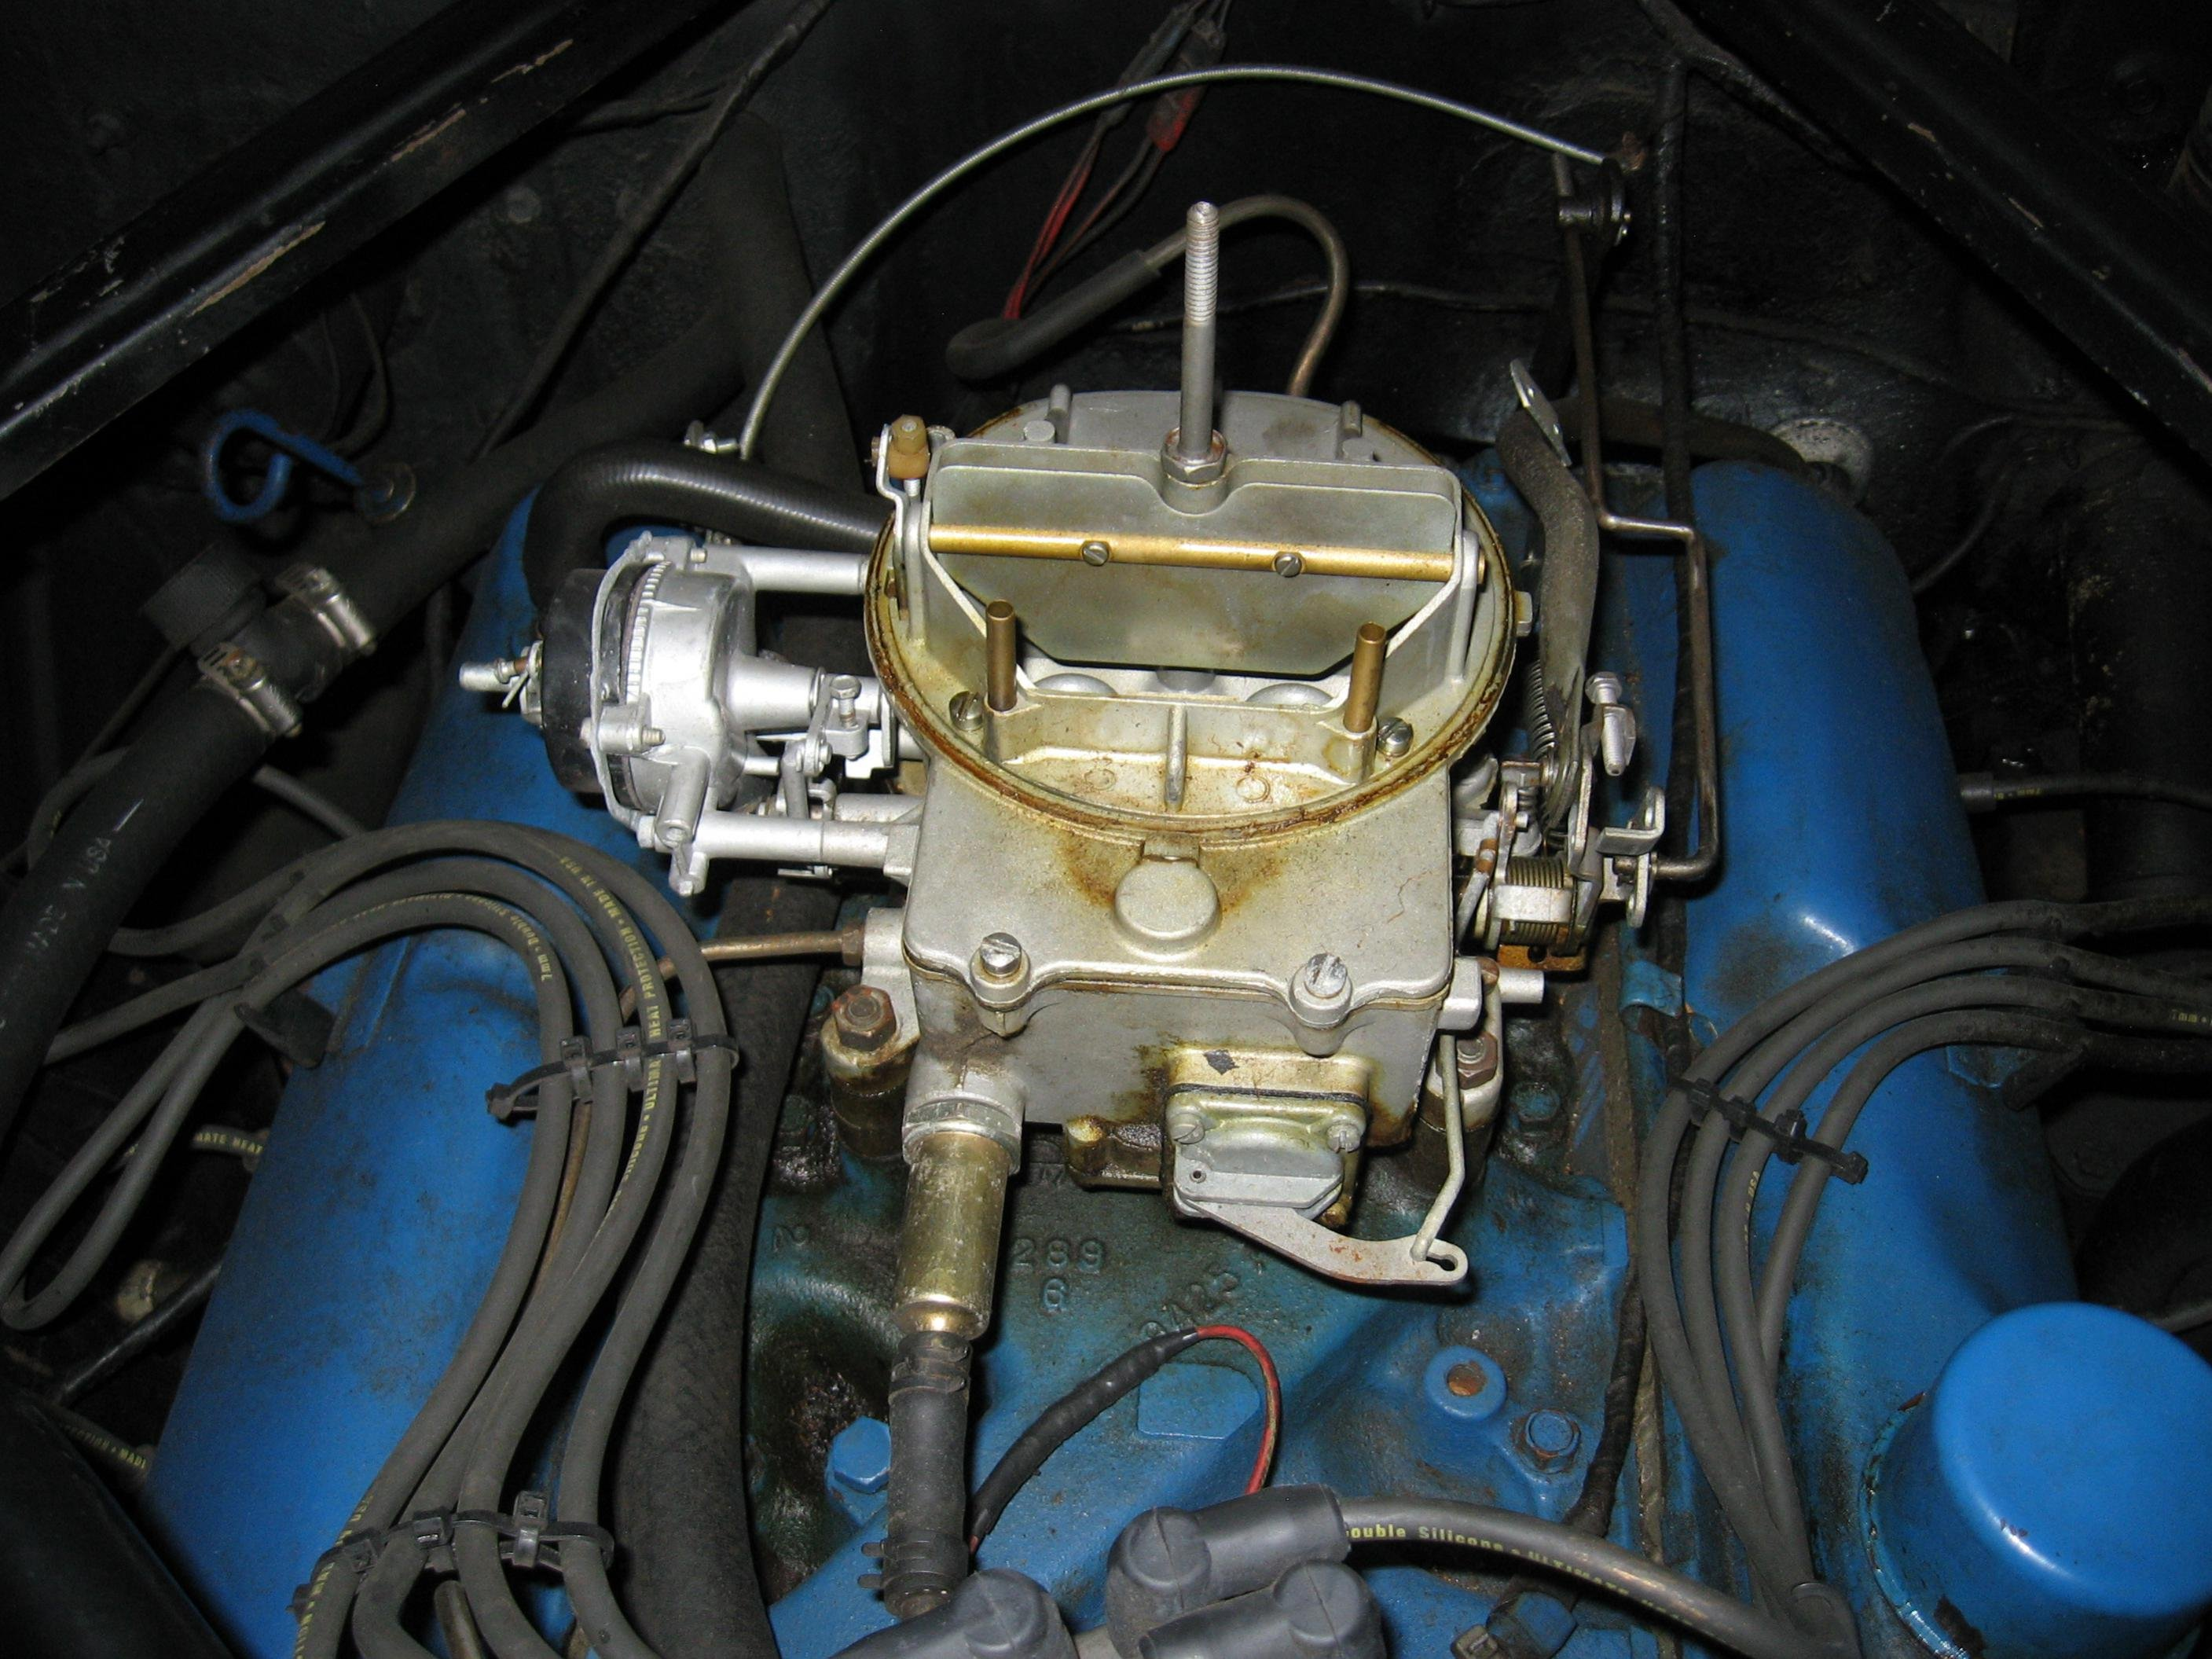 Is this carb too much for my 289 carburetor 2bbl 1966